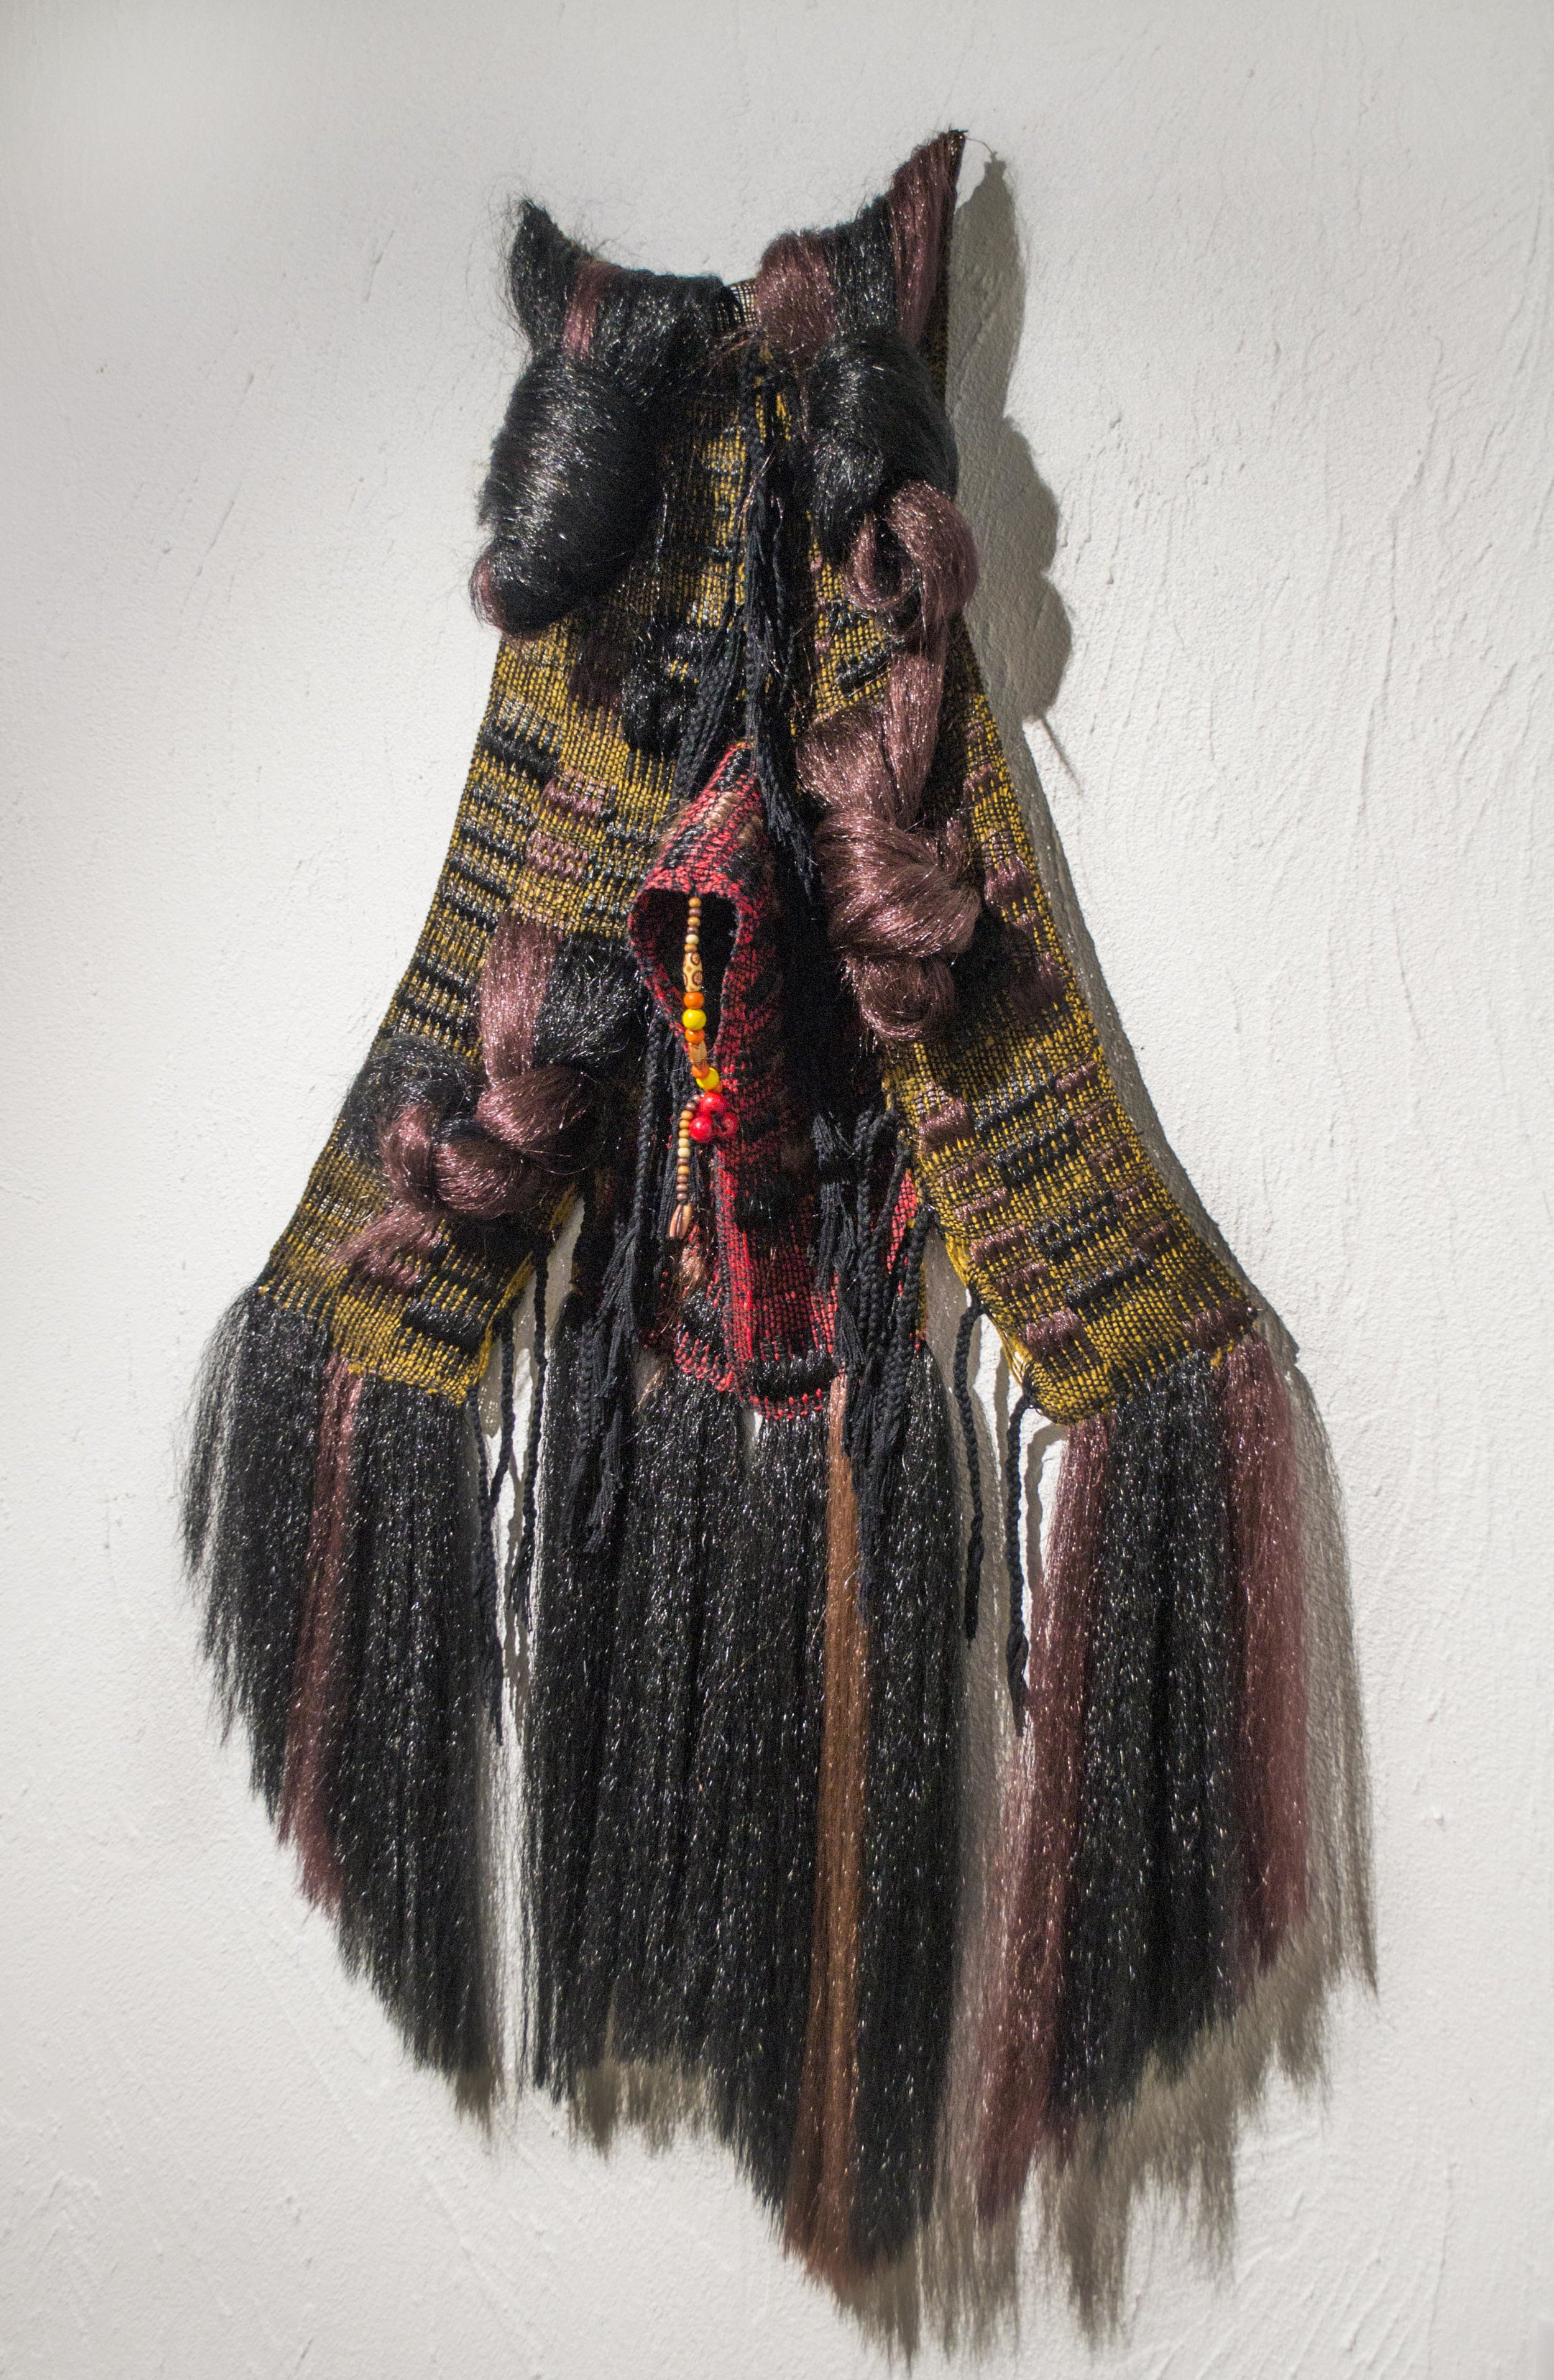 Rec-Triangular Cut  2014, Cotton, yarn, wooden beads, and synthetic hair, Photographer: Sylvia Abisaab SOLD